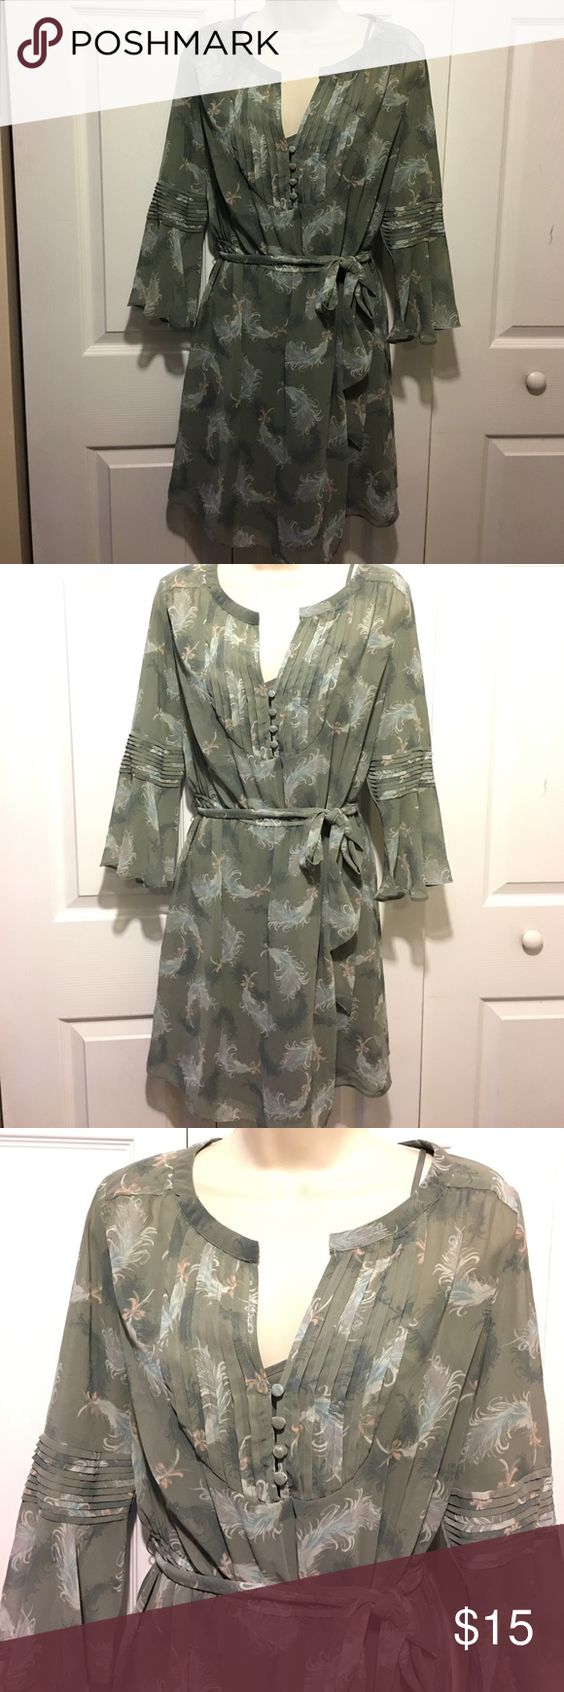 Gray Floral Dress 100% polyester. Dress has a liner with adjustable straps.  Excellent condition. No marks or tears. LC Lauren Conrad Dresses Midi